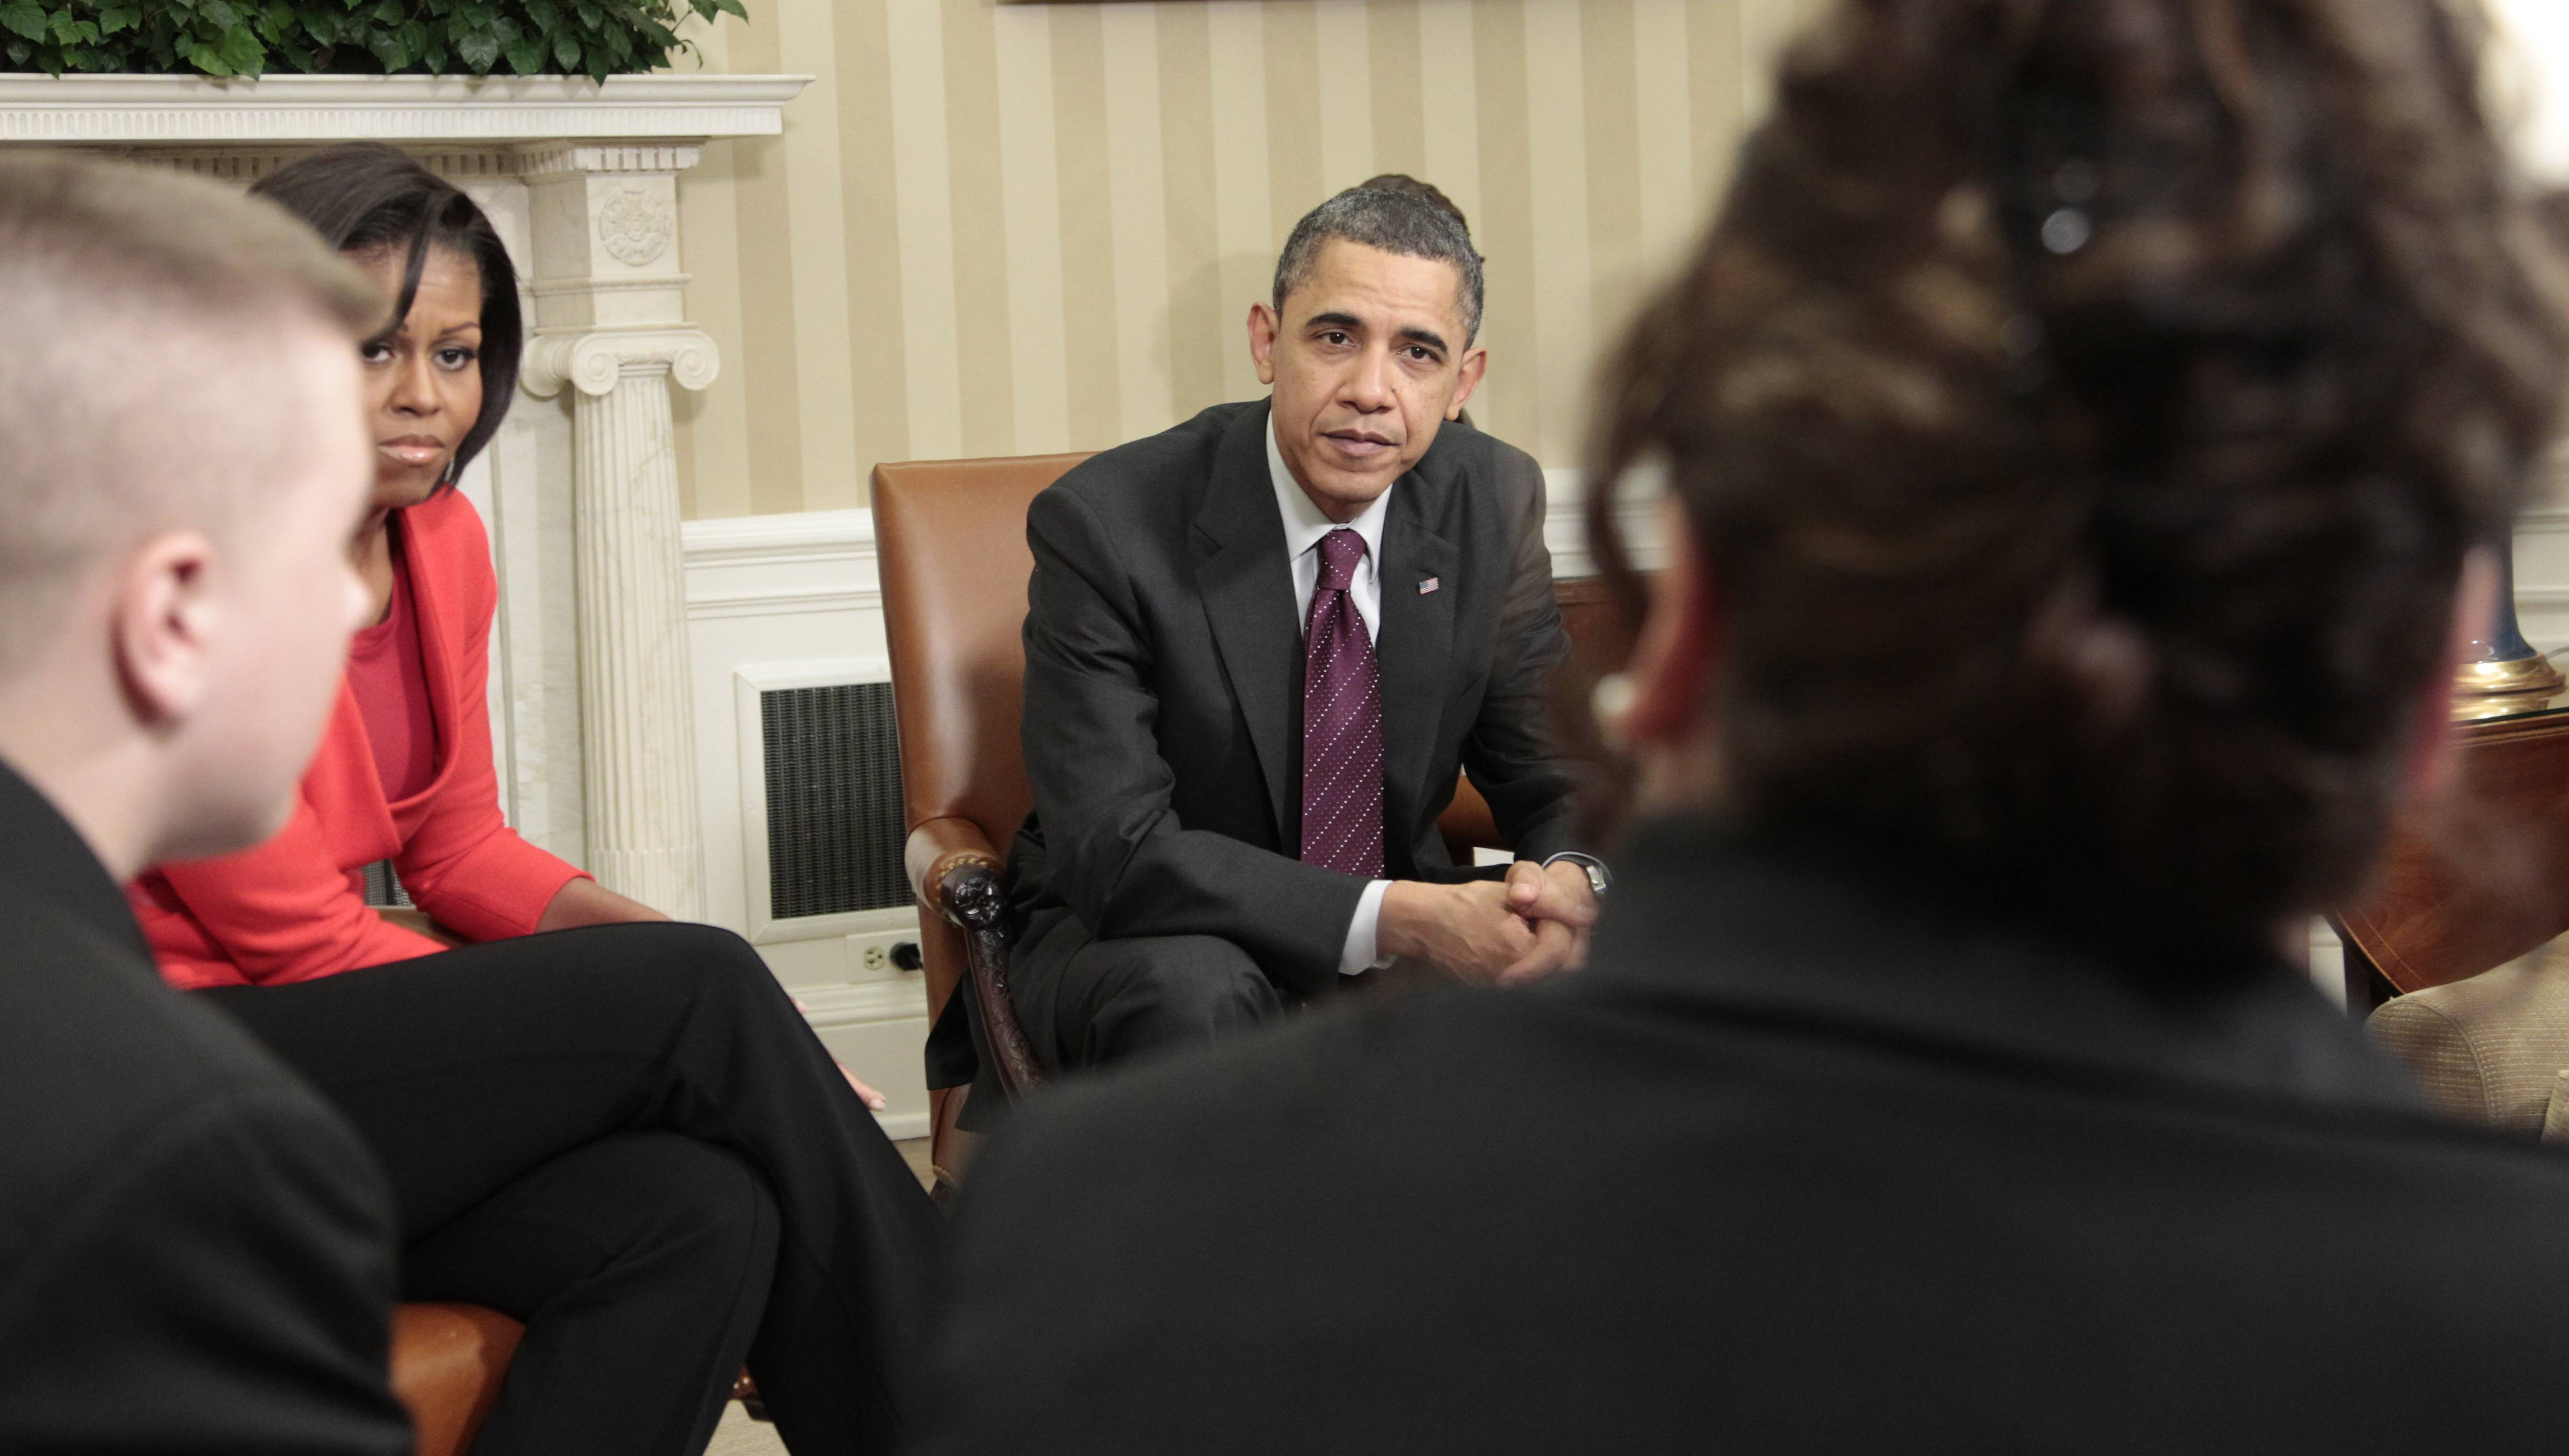 Obama: Bullying should not be inevitable, accepted